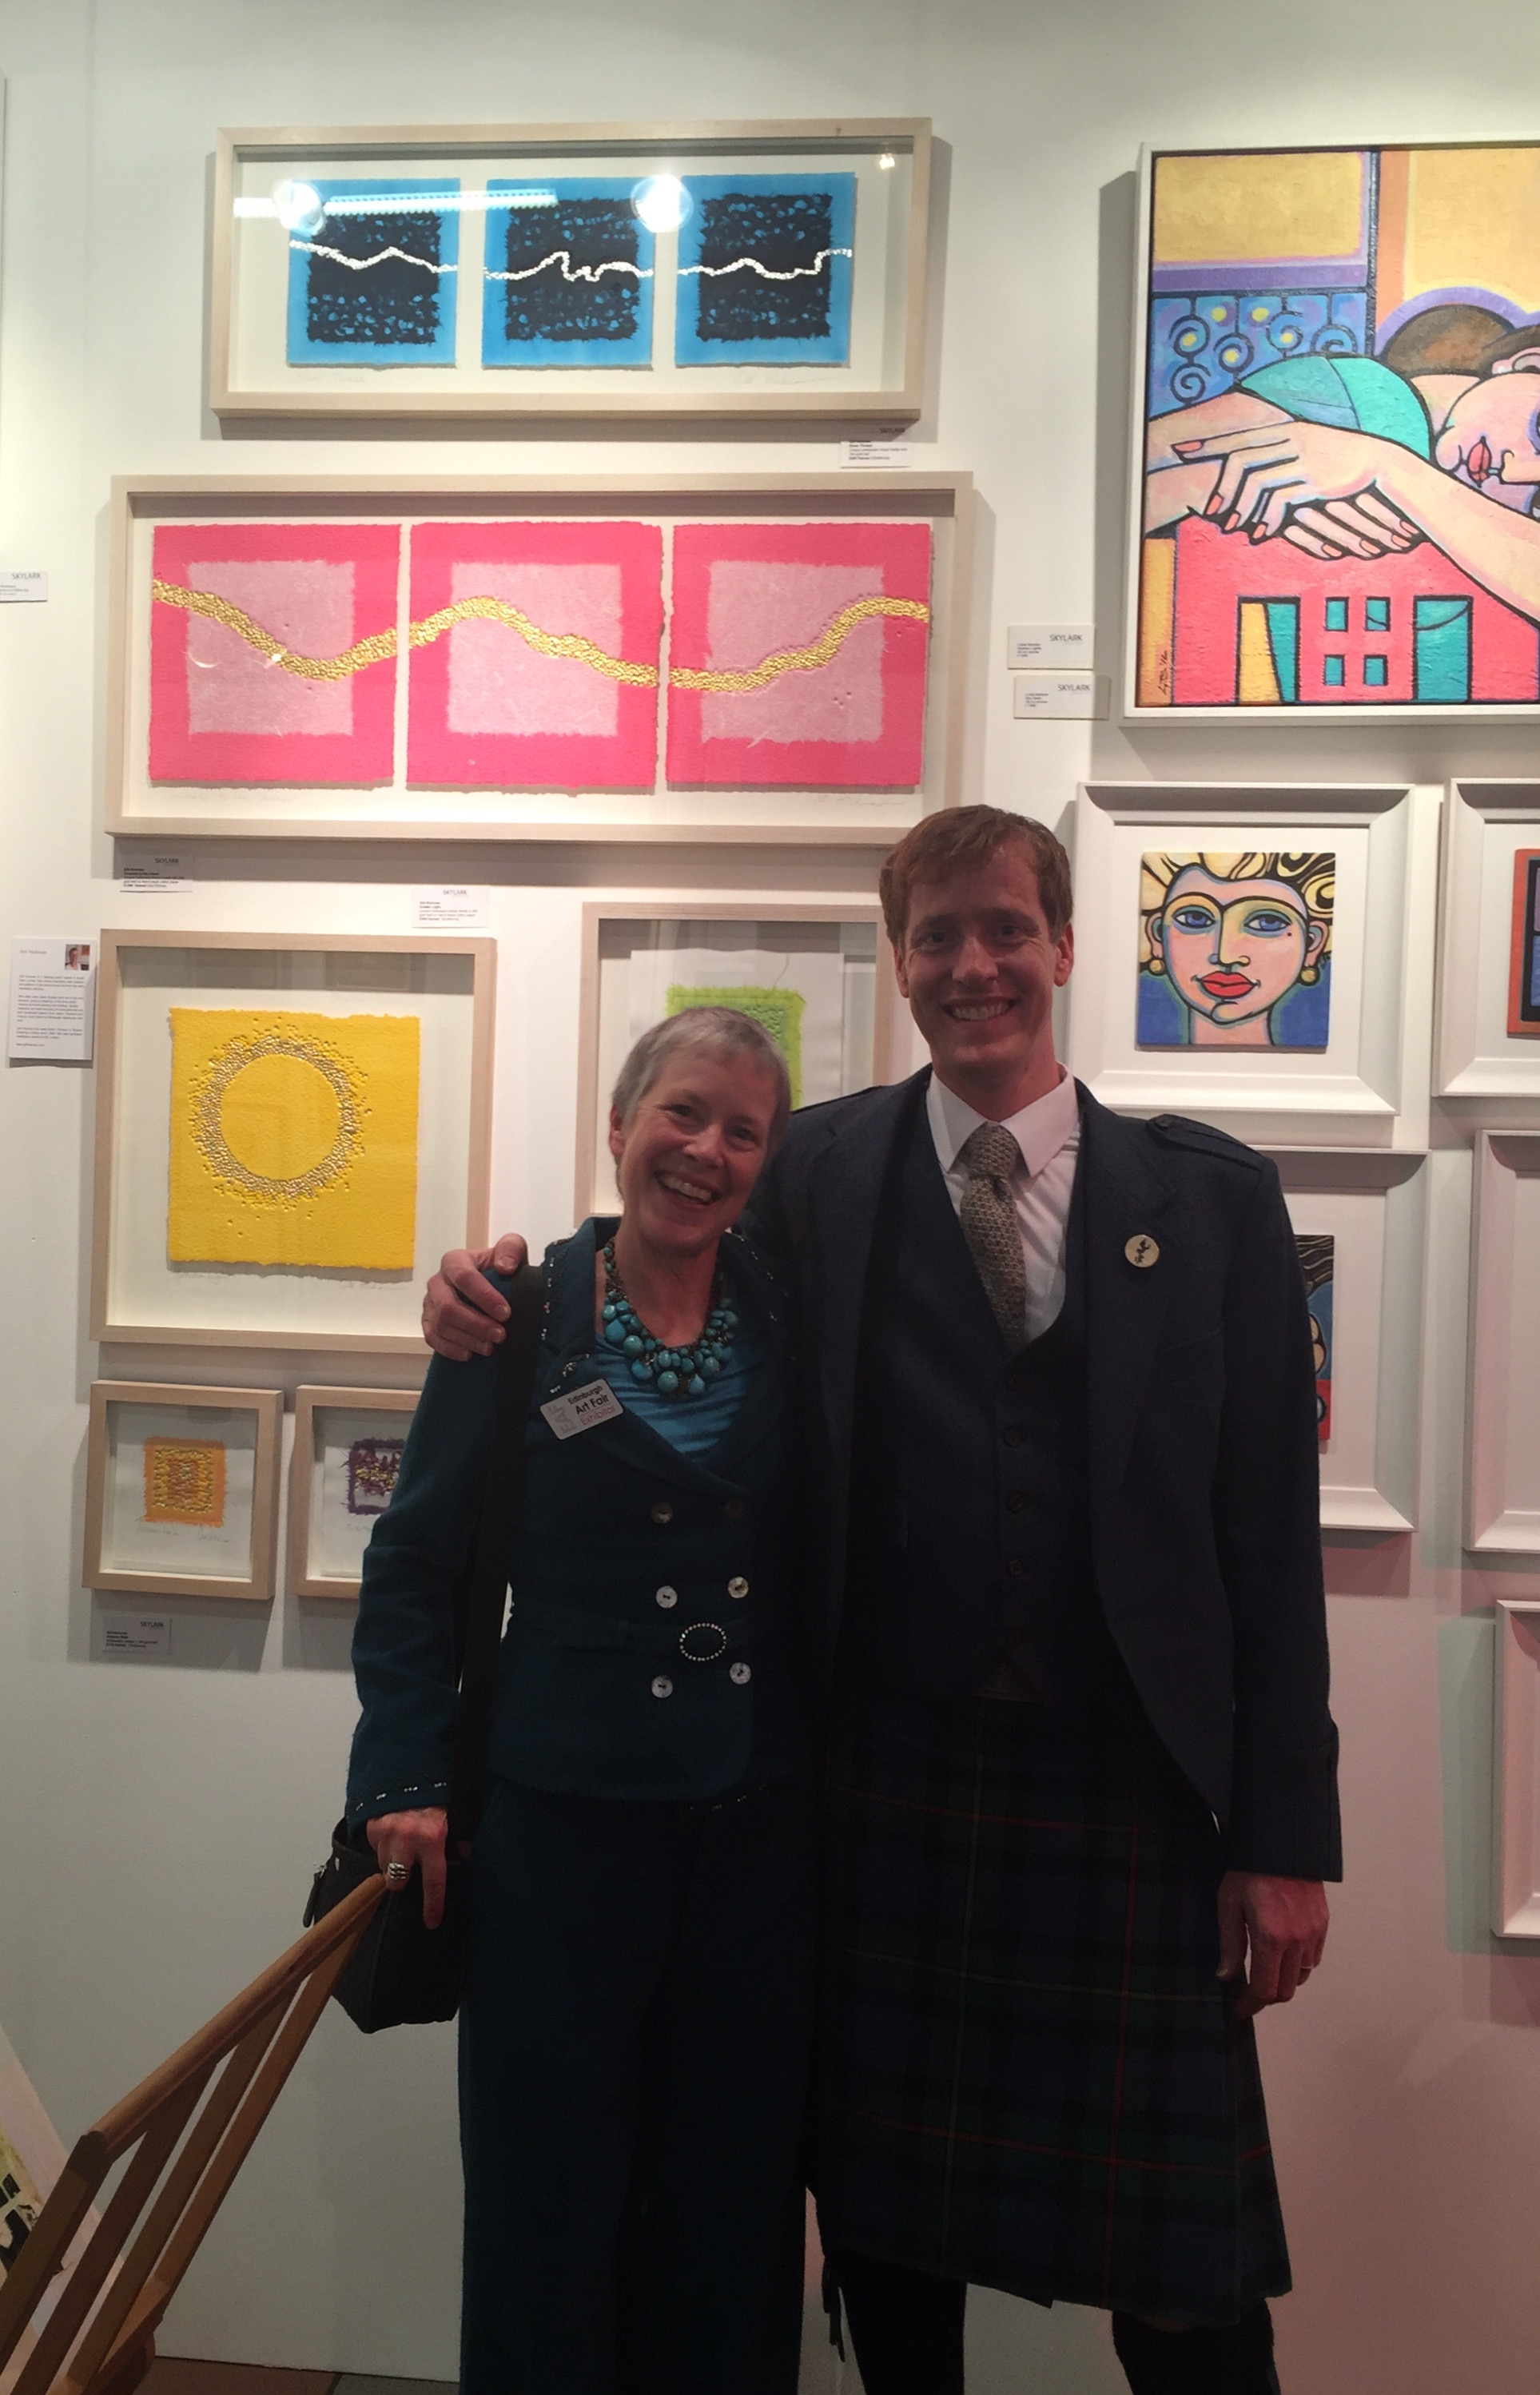 Me and Mike Smith (note the kilt!) at Edinburgh Art Fair